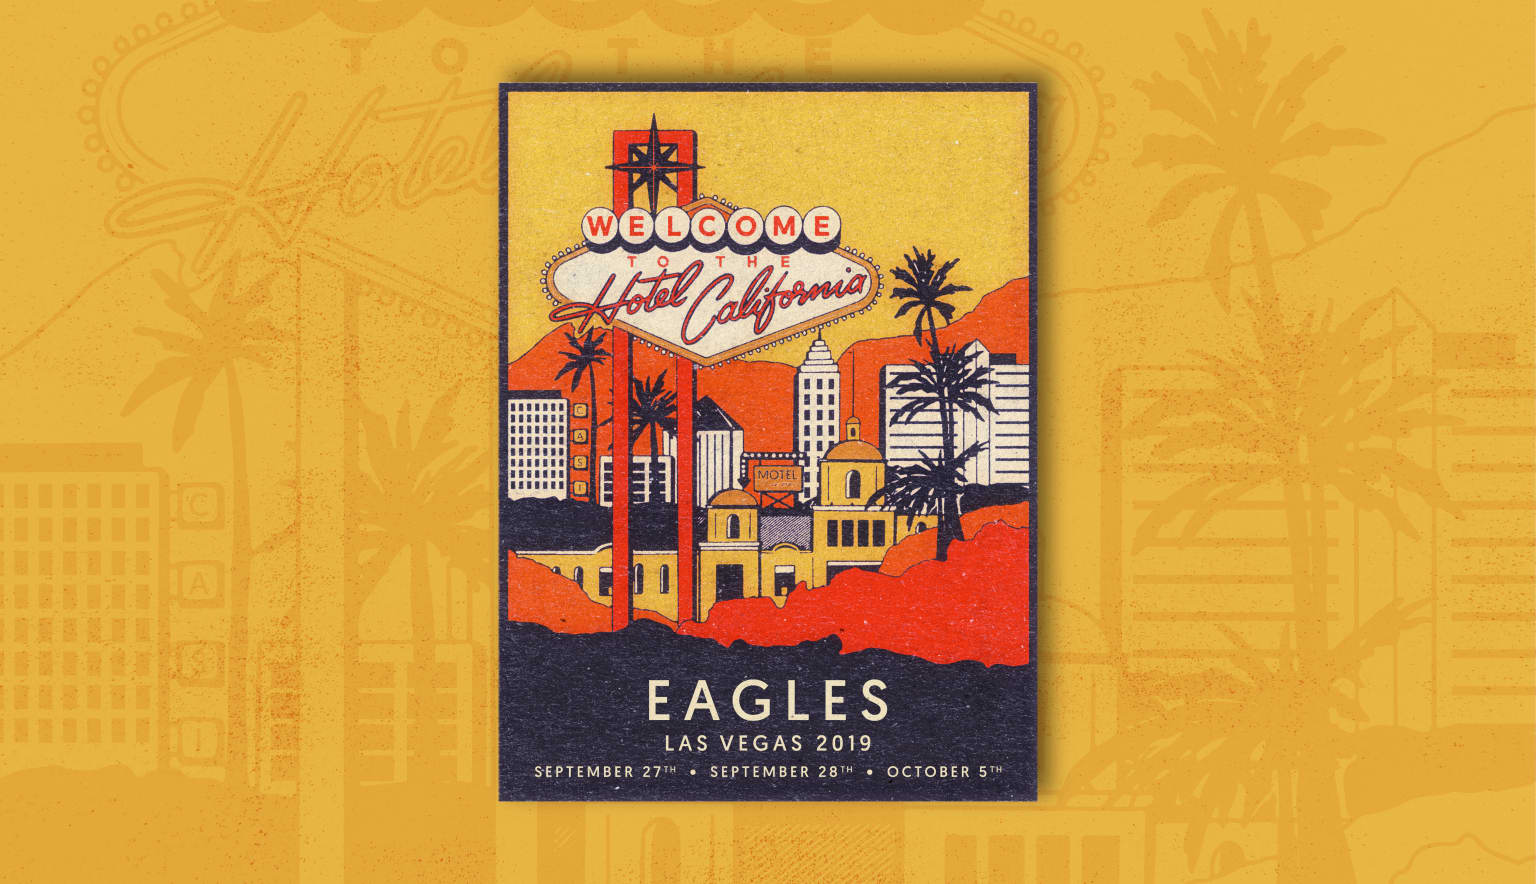 The Eagles Tour Poster